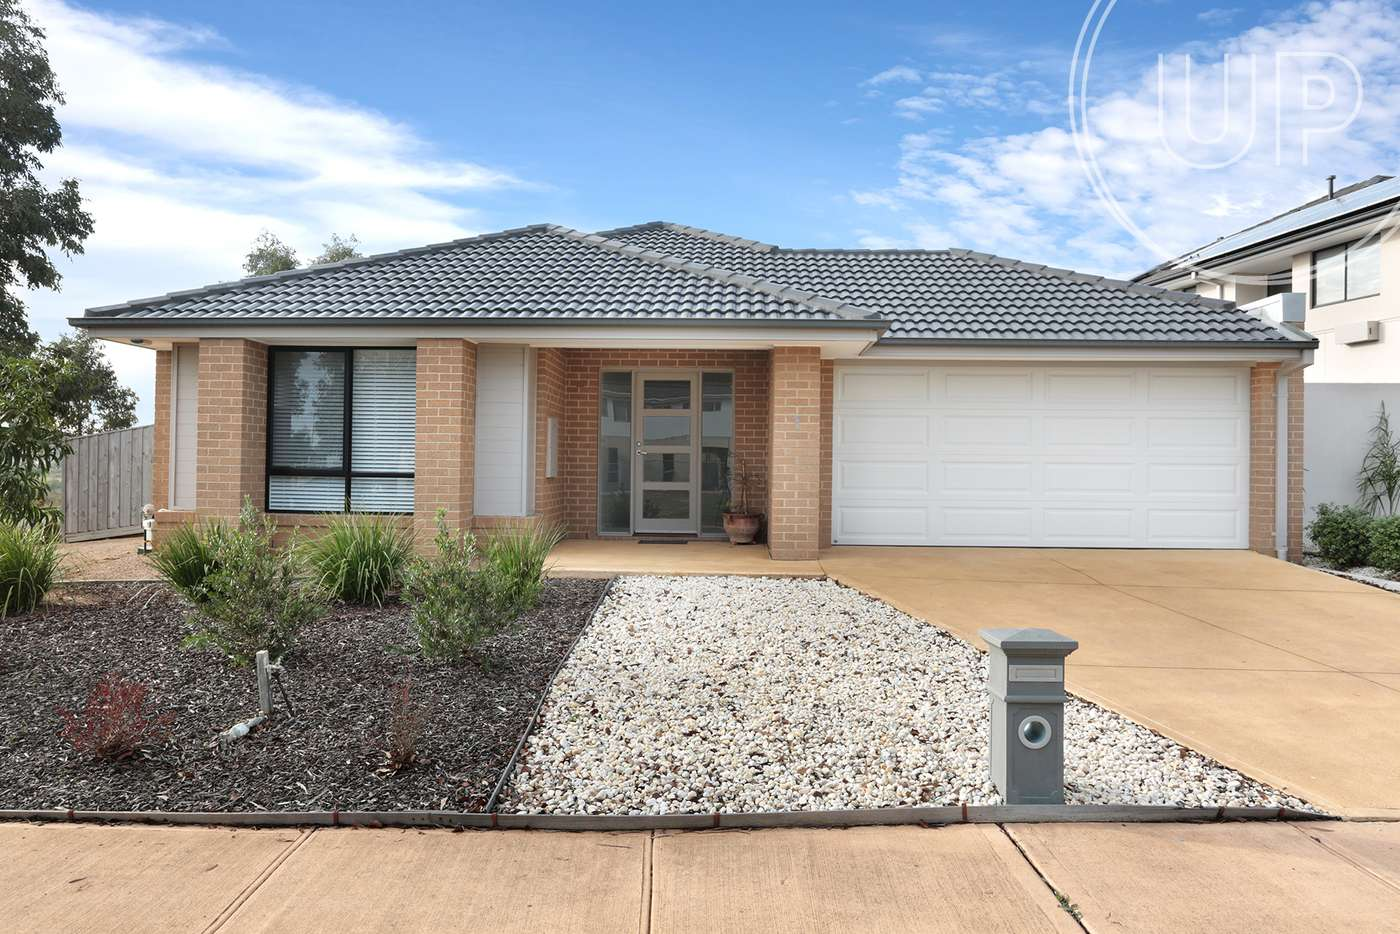 Main view of Homely house listing, 1 Brindabella Chase, Point Cook VIC 3030